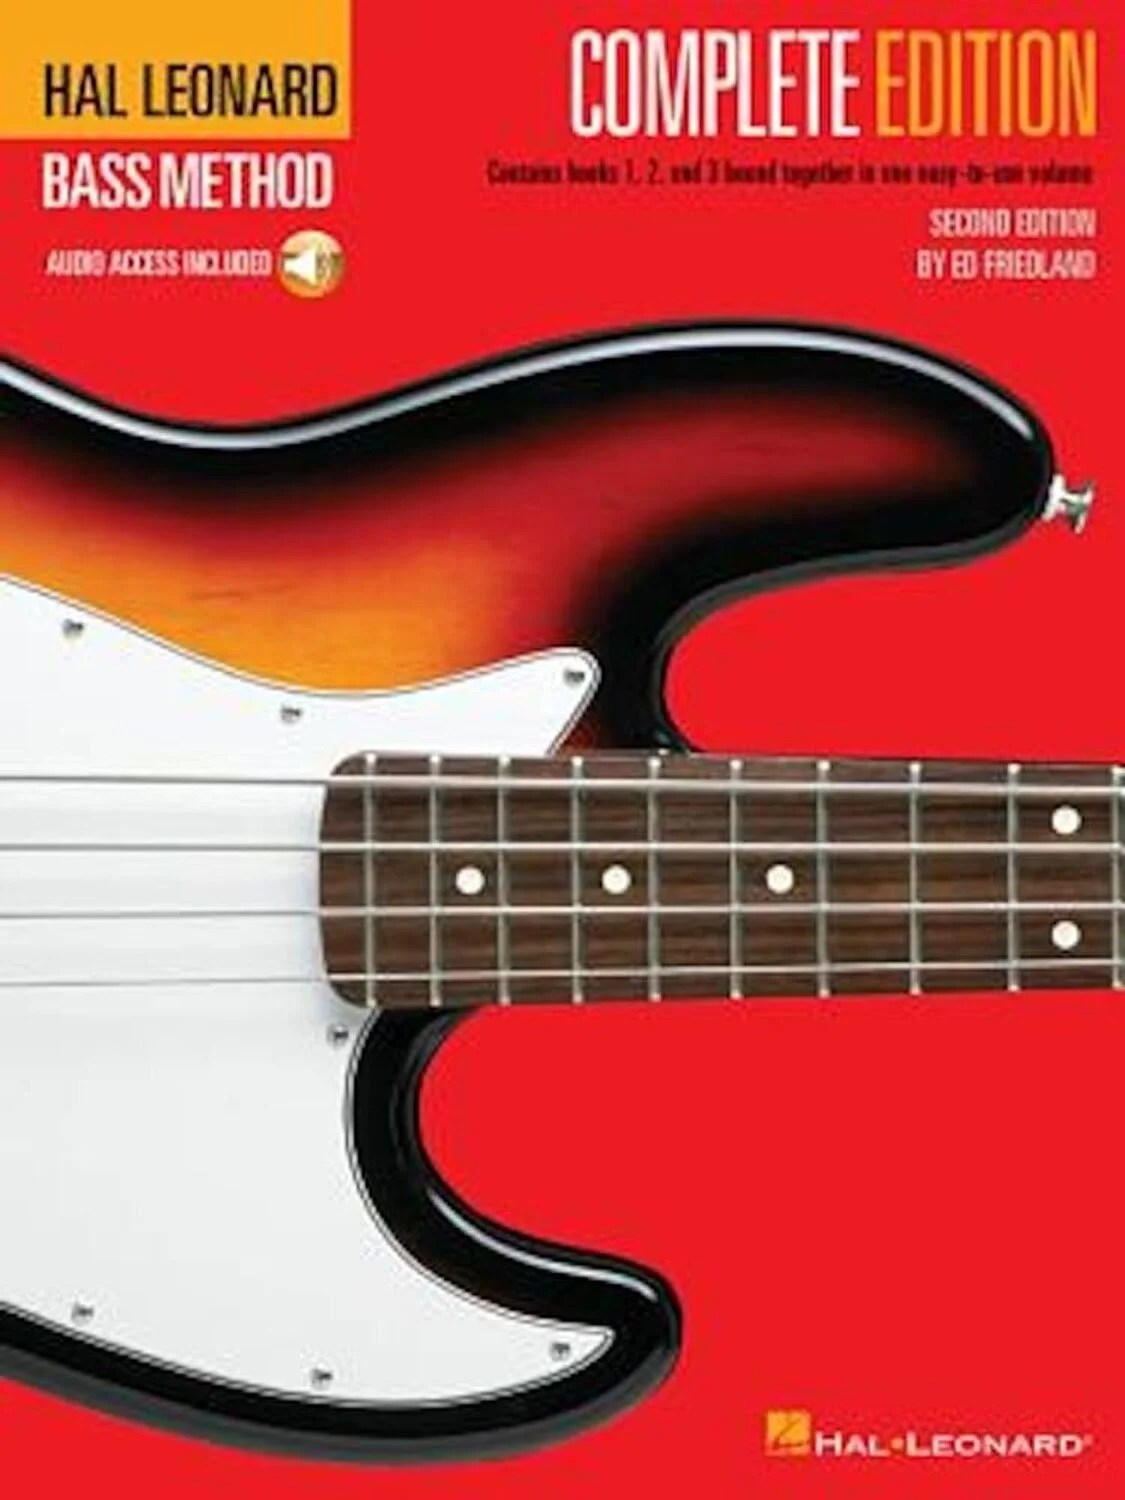 Image result for Hal Leonard Bass Method - Complete Edition: Books 1, 2 and 3 Bound Together in One Easy-To-Use Volume! 'With Compact Disc', Paperback